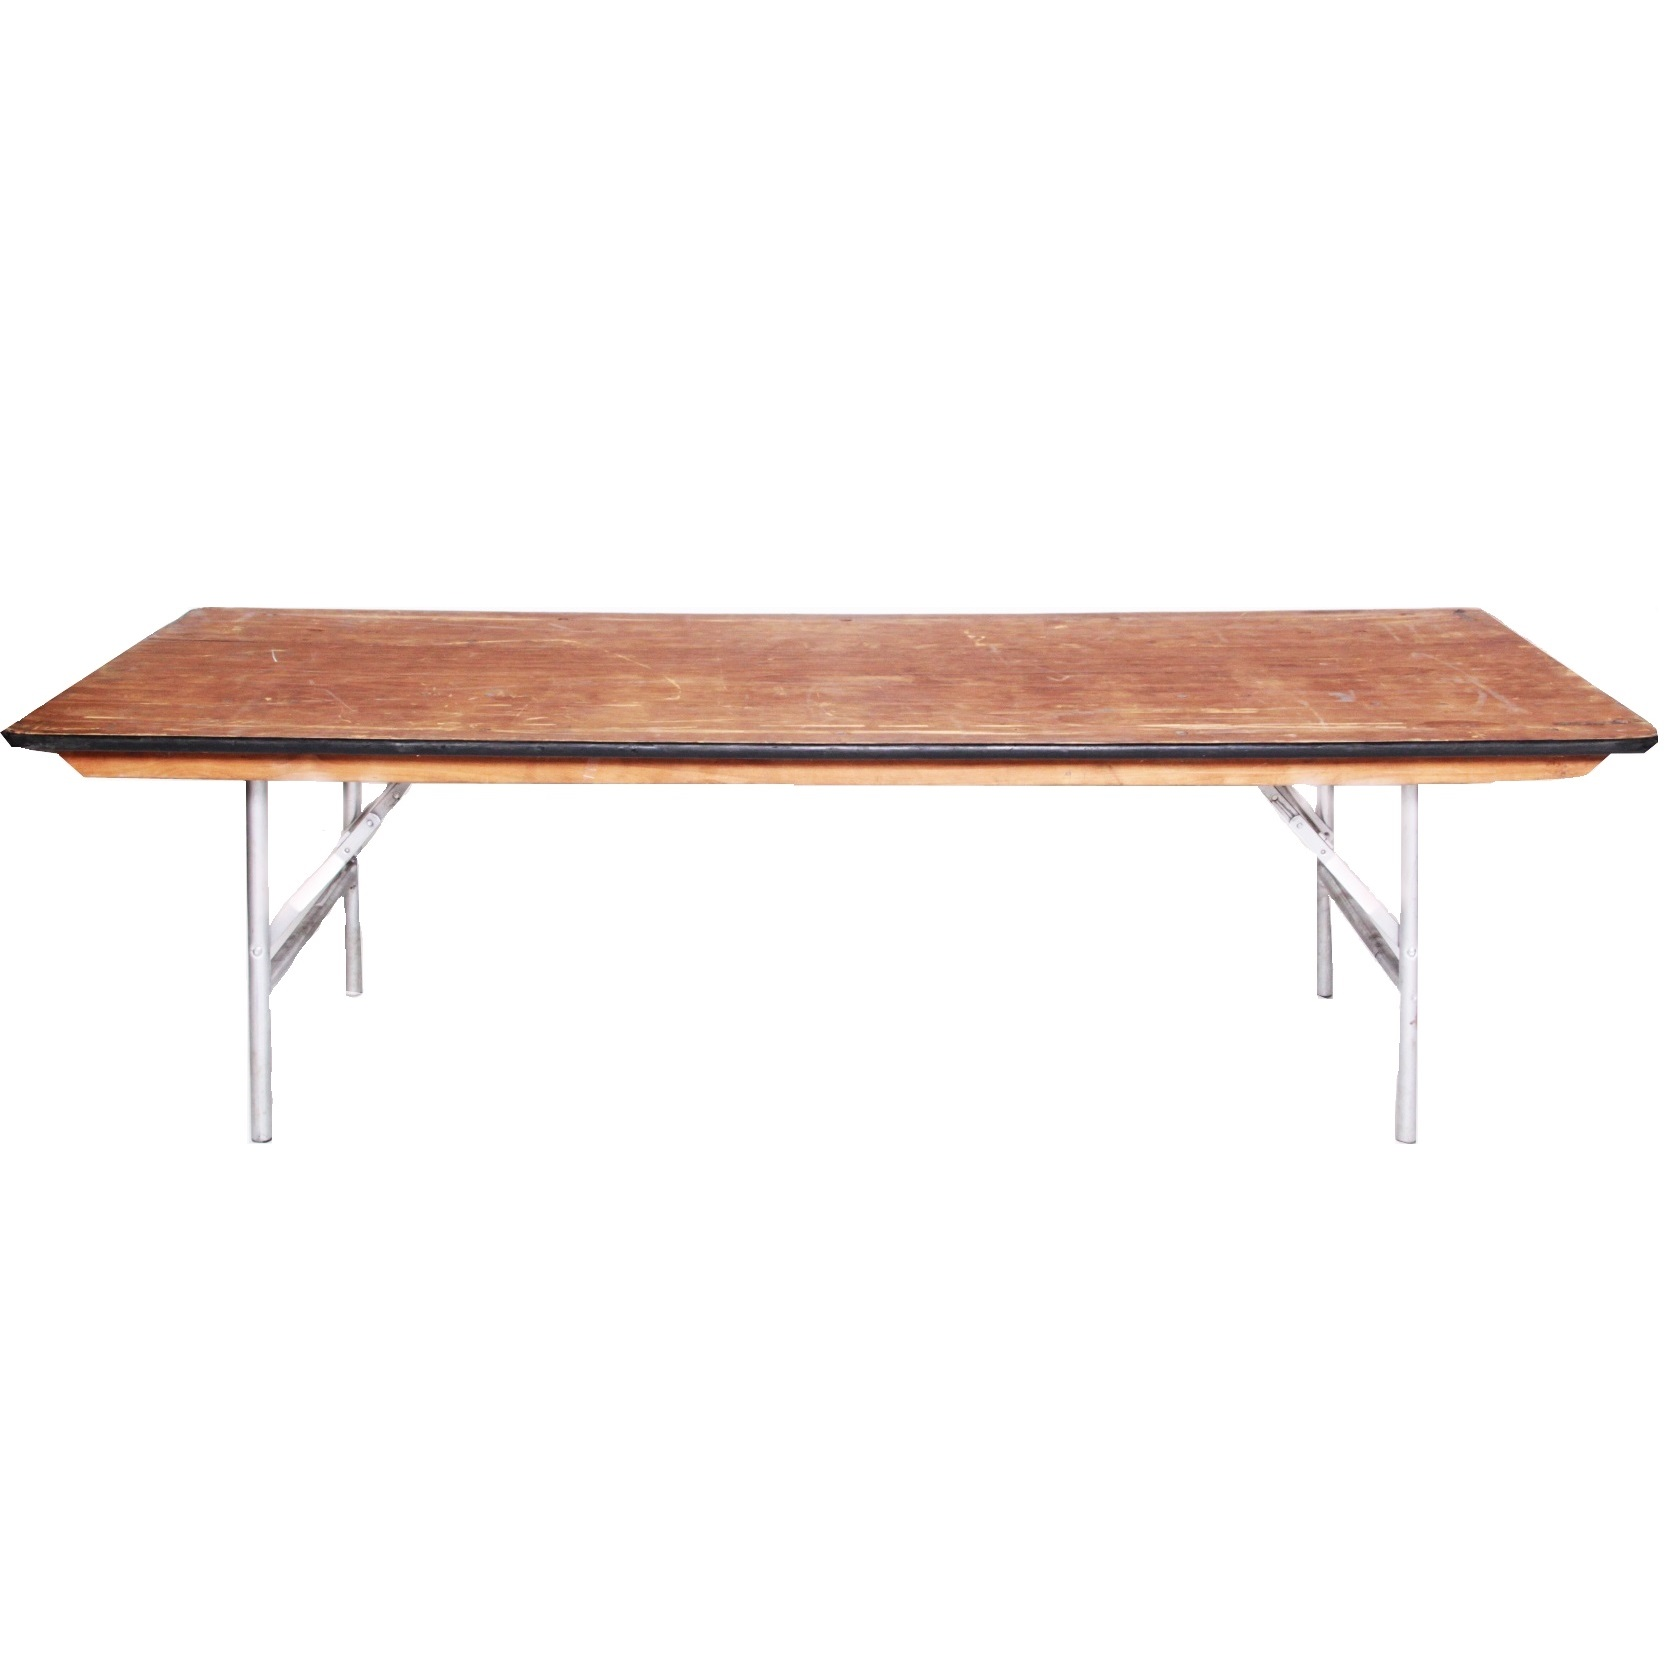 rectangular-childrens-table-6ft-x-18-inch-tallEDIT.jpg